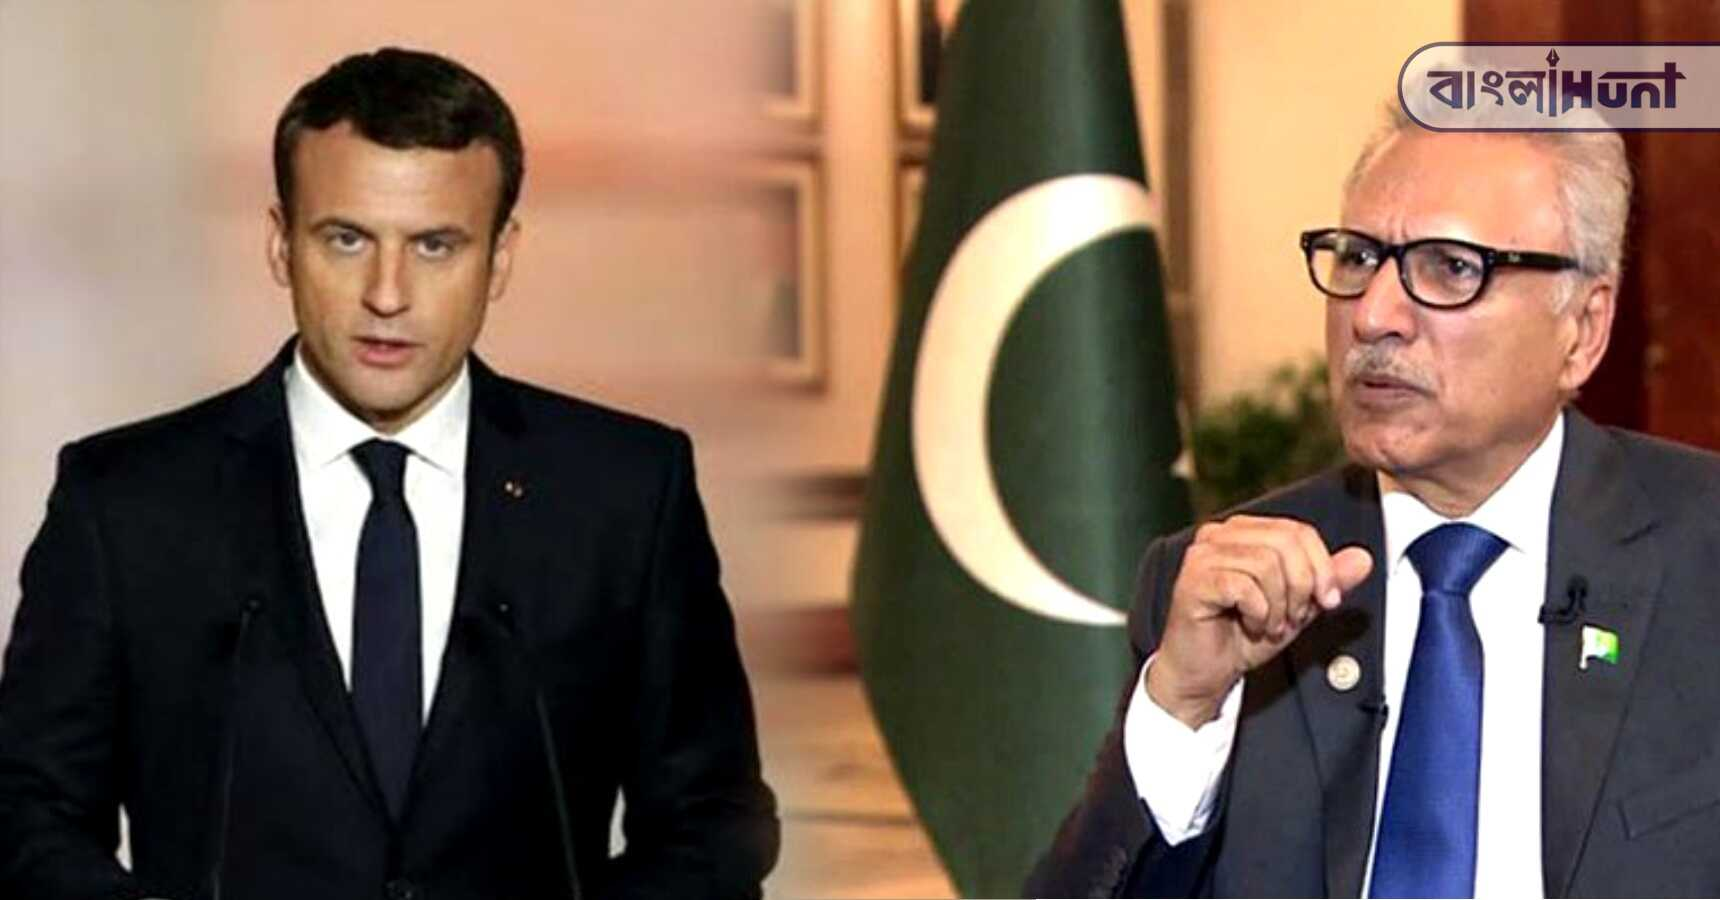 Pakistan is angry over the new law proposed by France